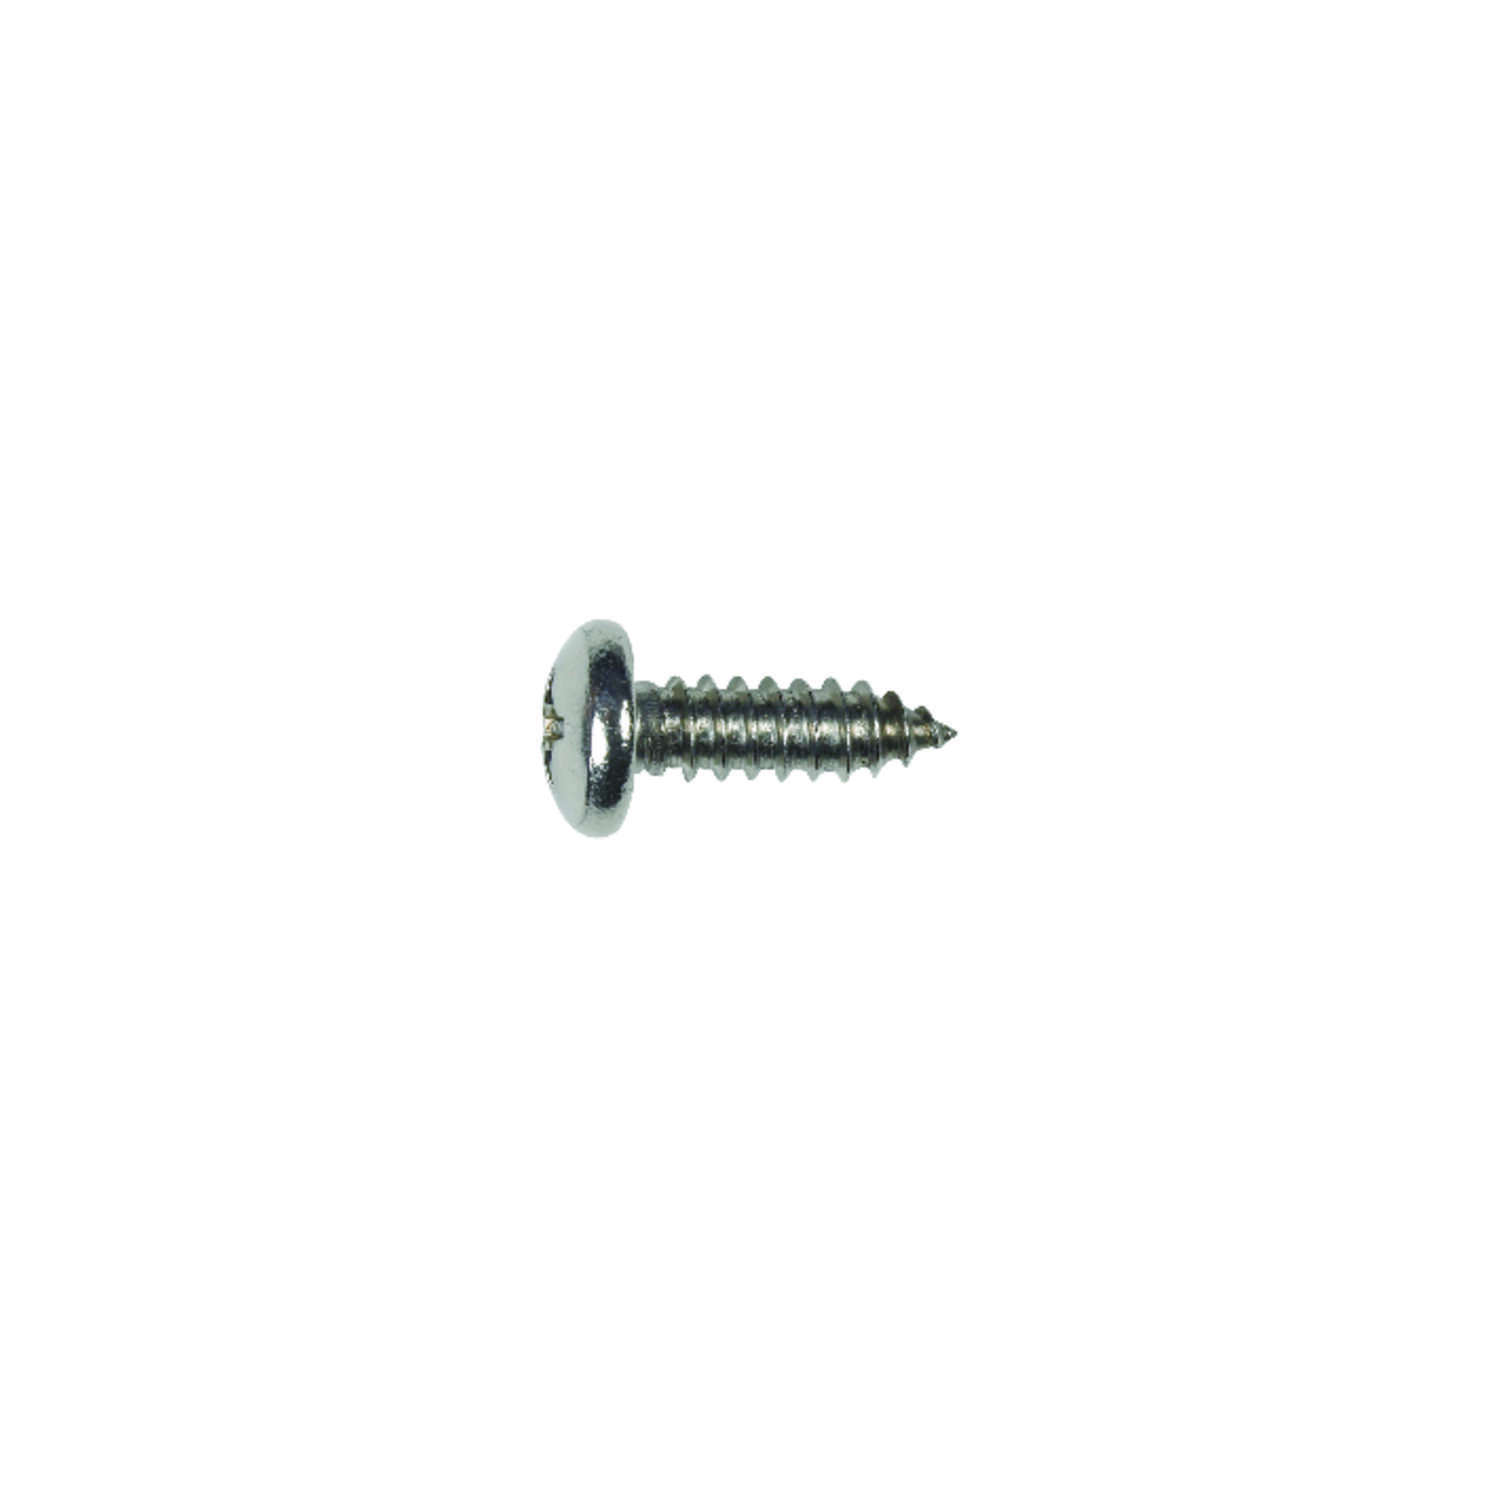 HILLMAN  3/4 in. L x 14   Pan Head Stainless Steel  Sheet Metal Screws  Phillips  100 per box